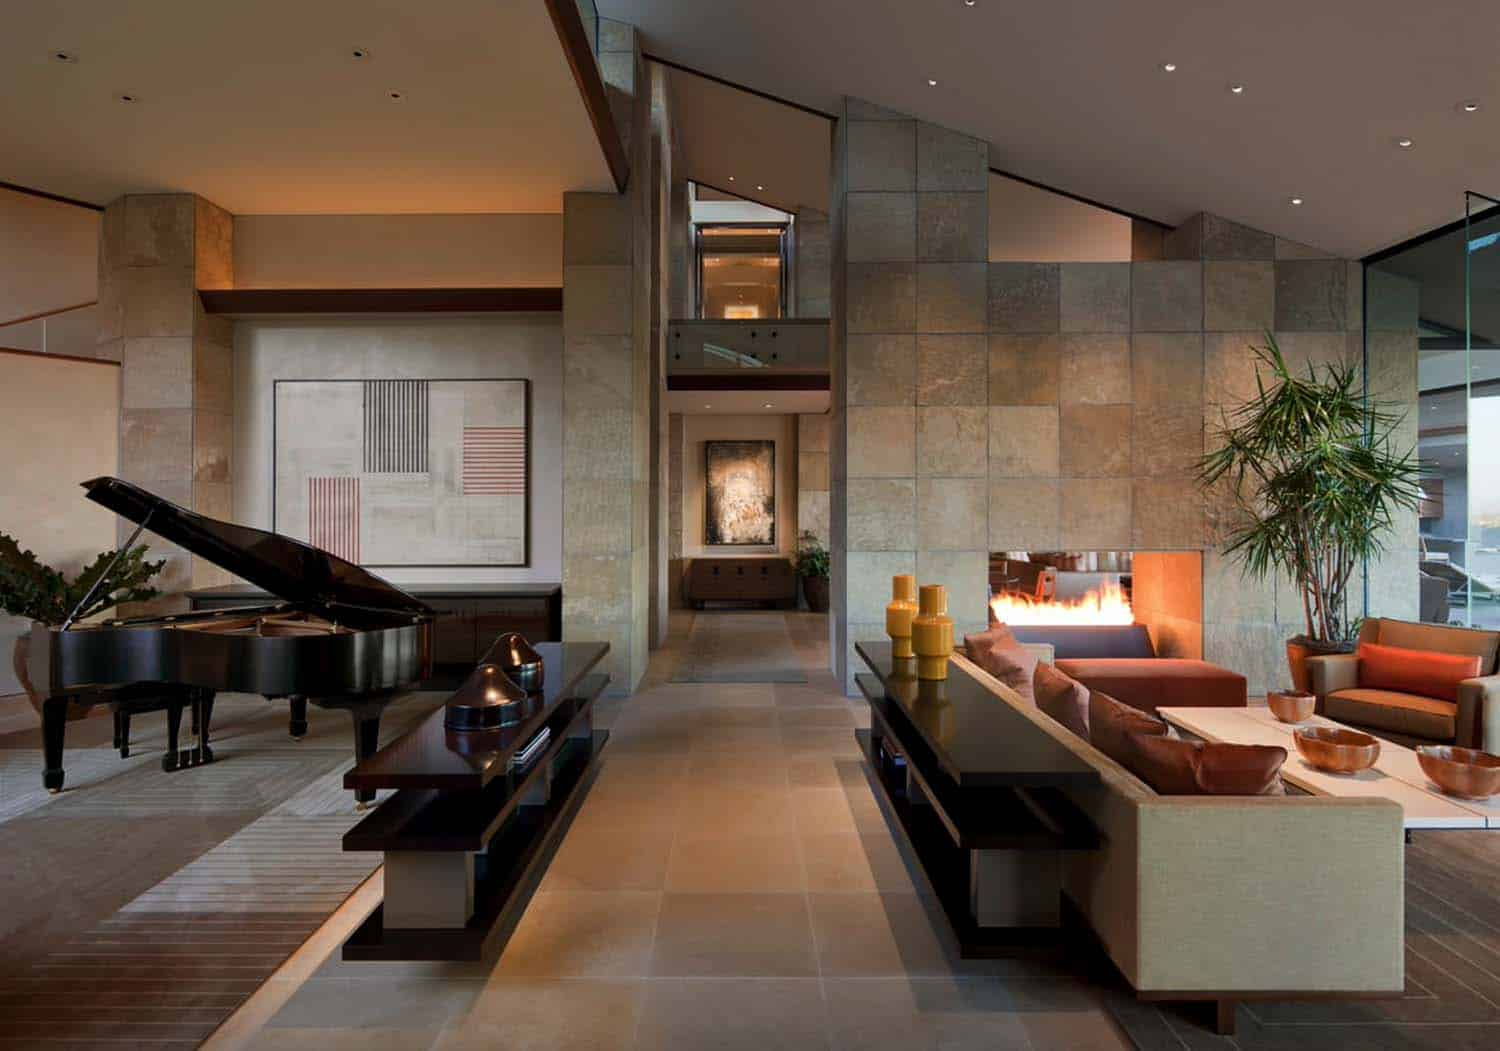 extraordinary living room piano idea | Modern desert home set on a rocky hillside with ...